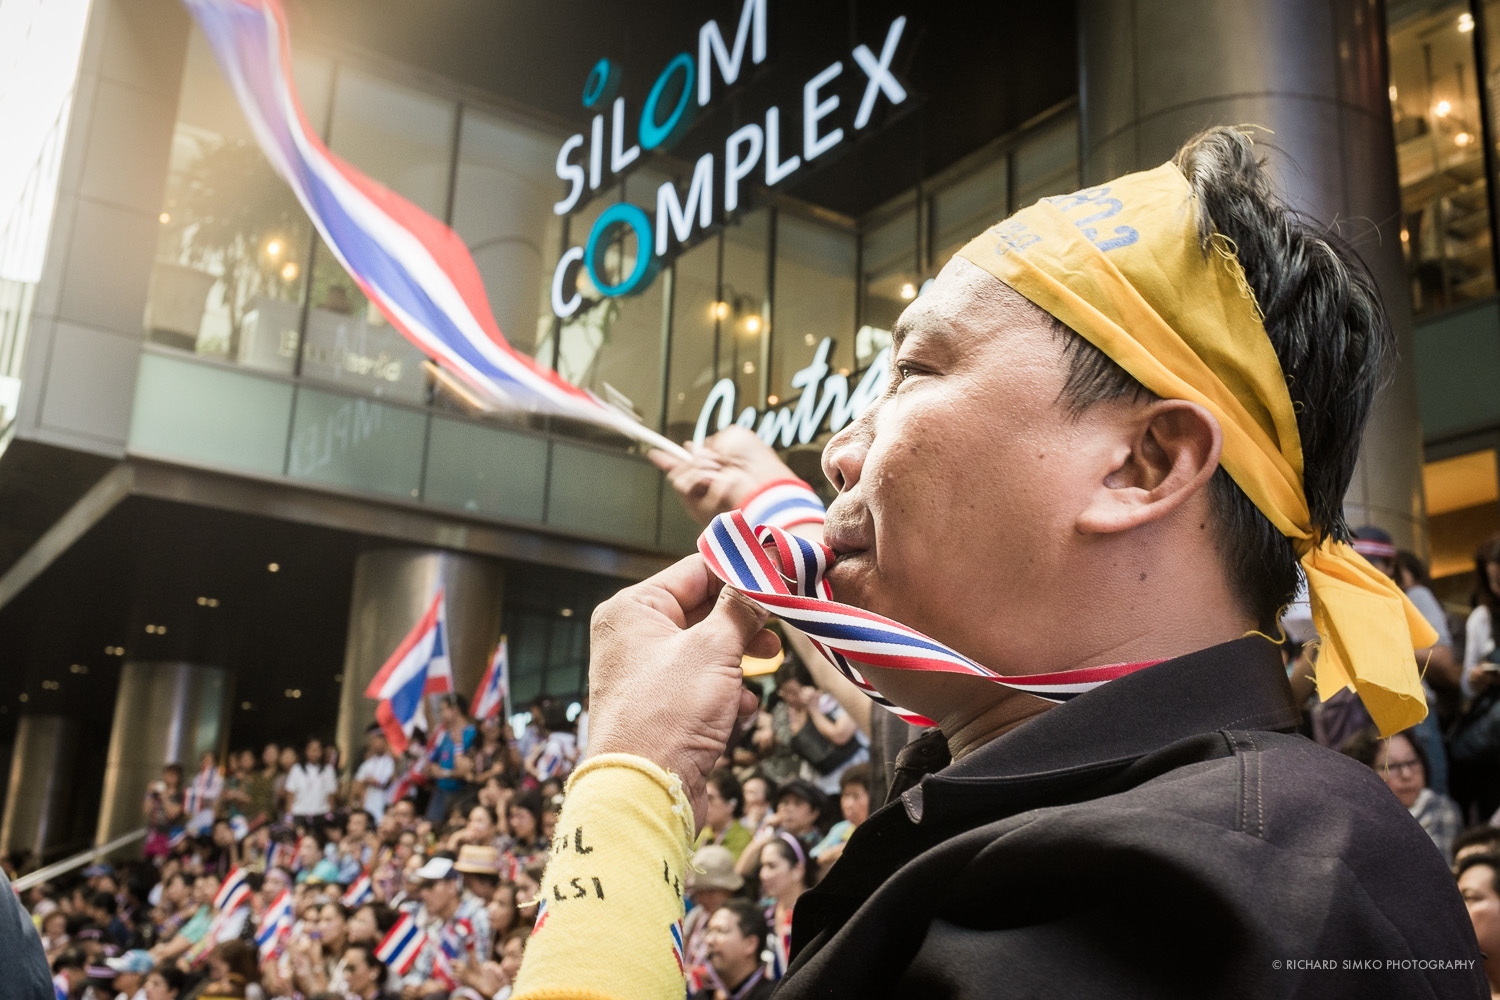 Face of Silom rally. The most enthusiast protester.